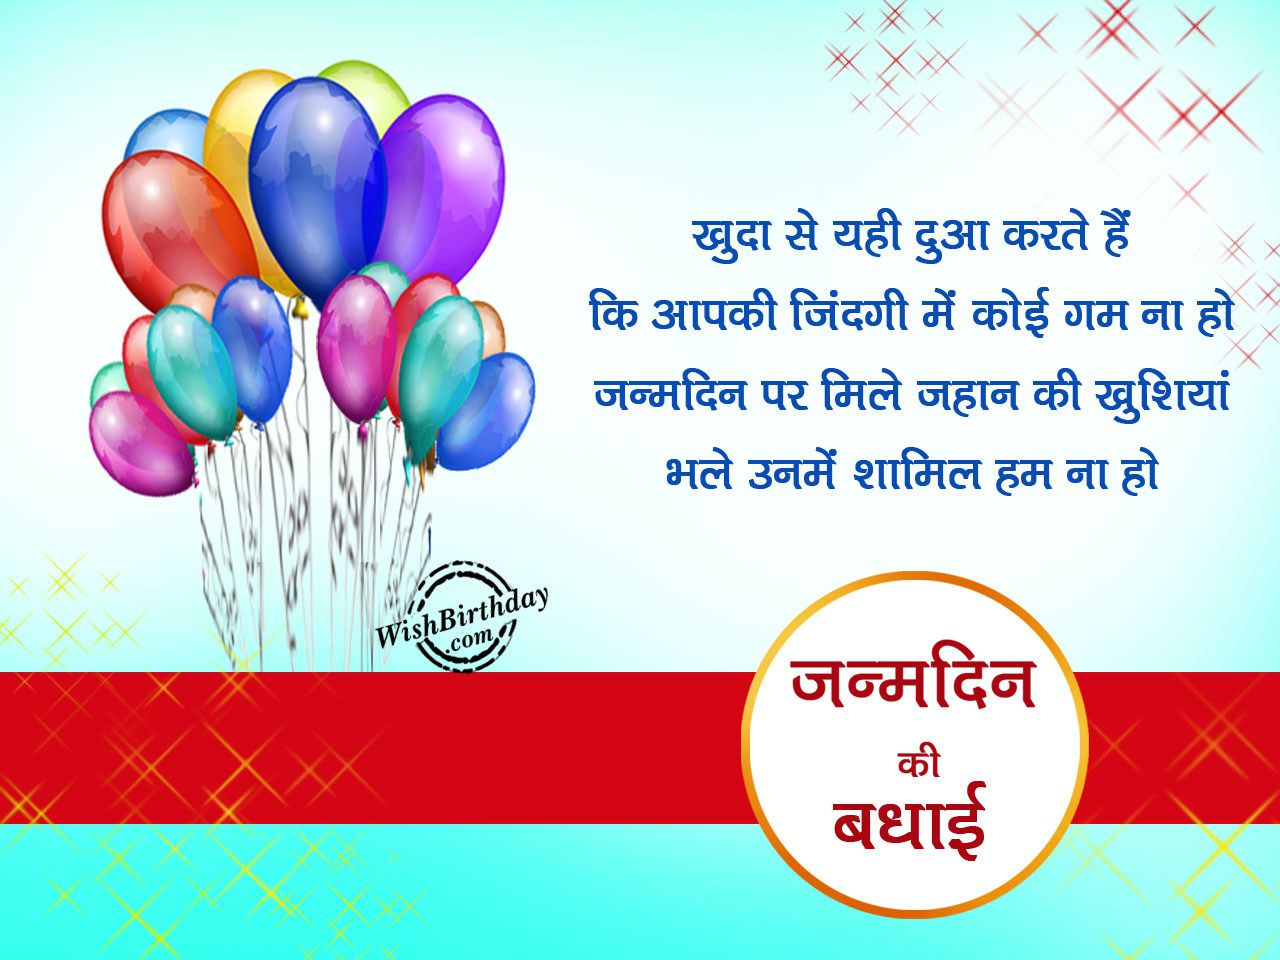 Hindi Birthday Quotes For Brother: Happy Birthday Quotes Text & Images In Hindi